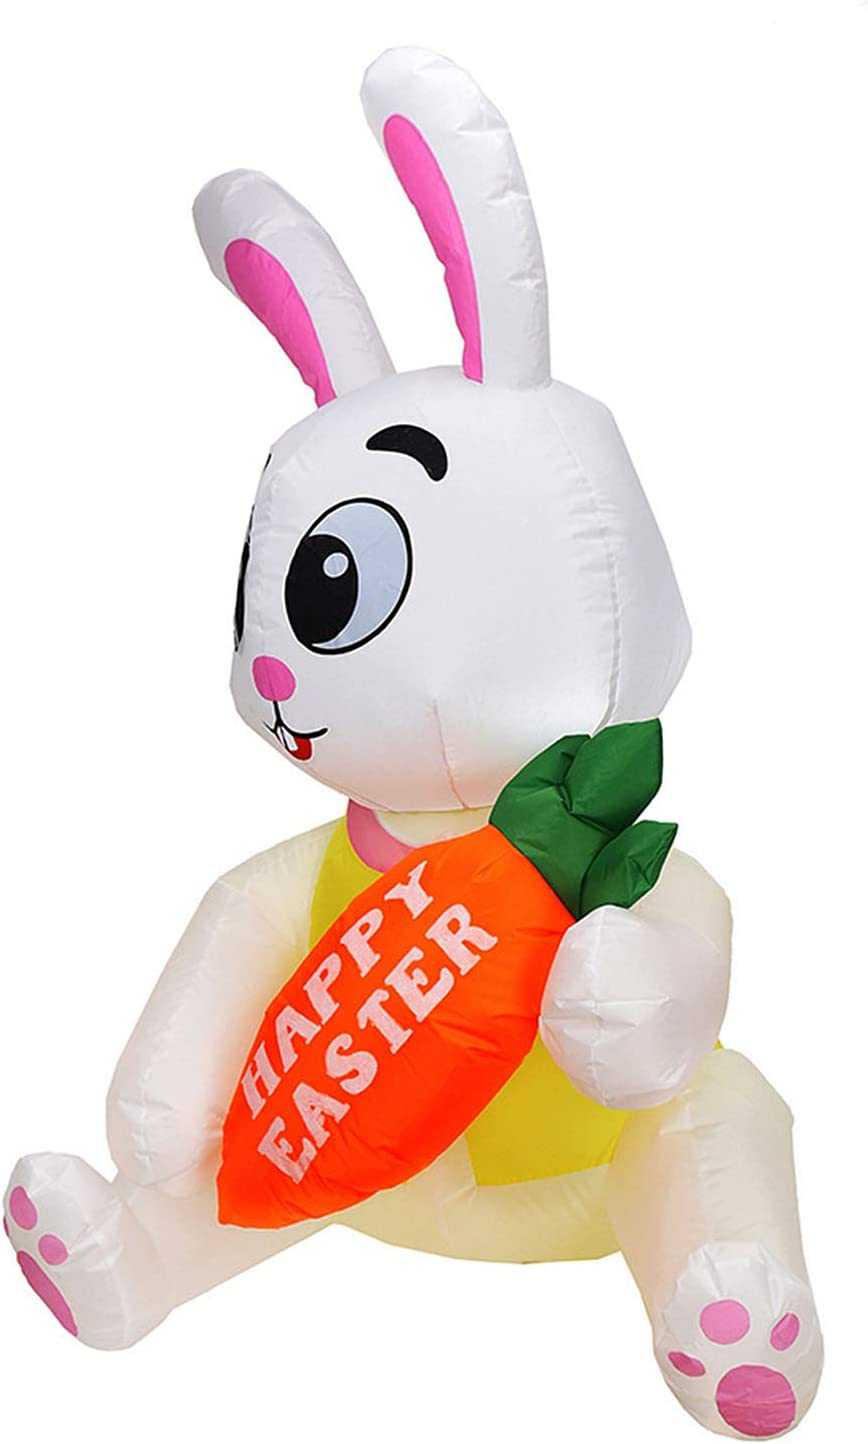 LAMF 5.2 Feet Easter Inflatables Bunny Blow Yard Rabbit depot up Purchase Lawn